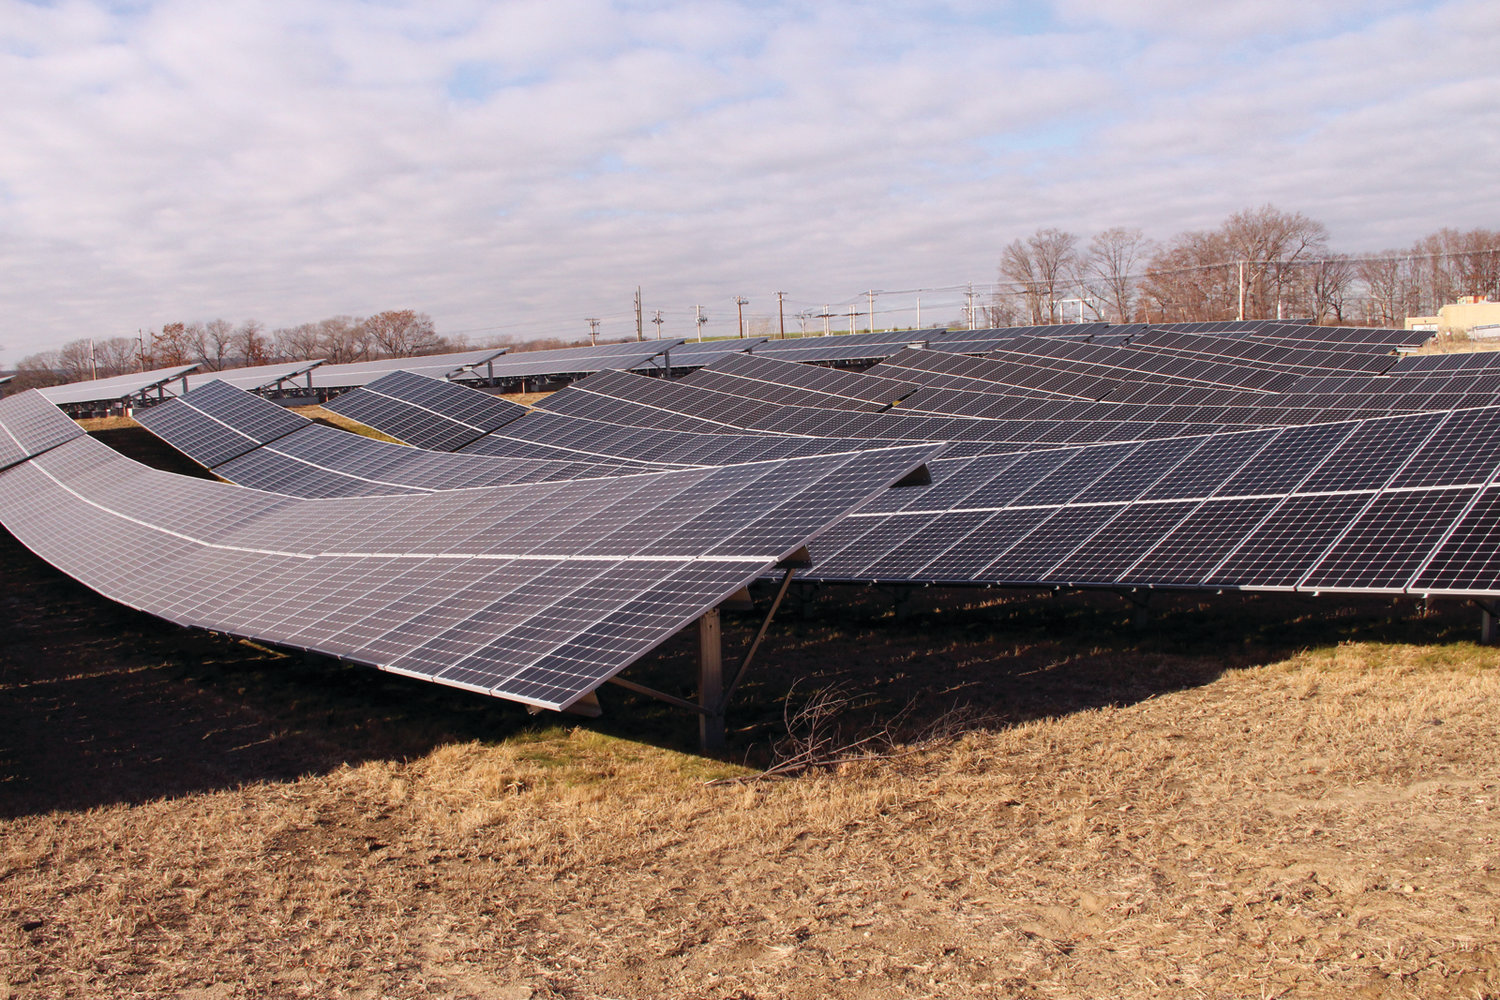 WHAT IT COULD BE: Southern Sky Renewal Energy built this solar farm on a brown field in Warwick. Some homeowners on Natick Avenue feel the company should be looking to develop similar sites in Cranston, not the wooded land under consideration.